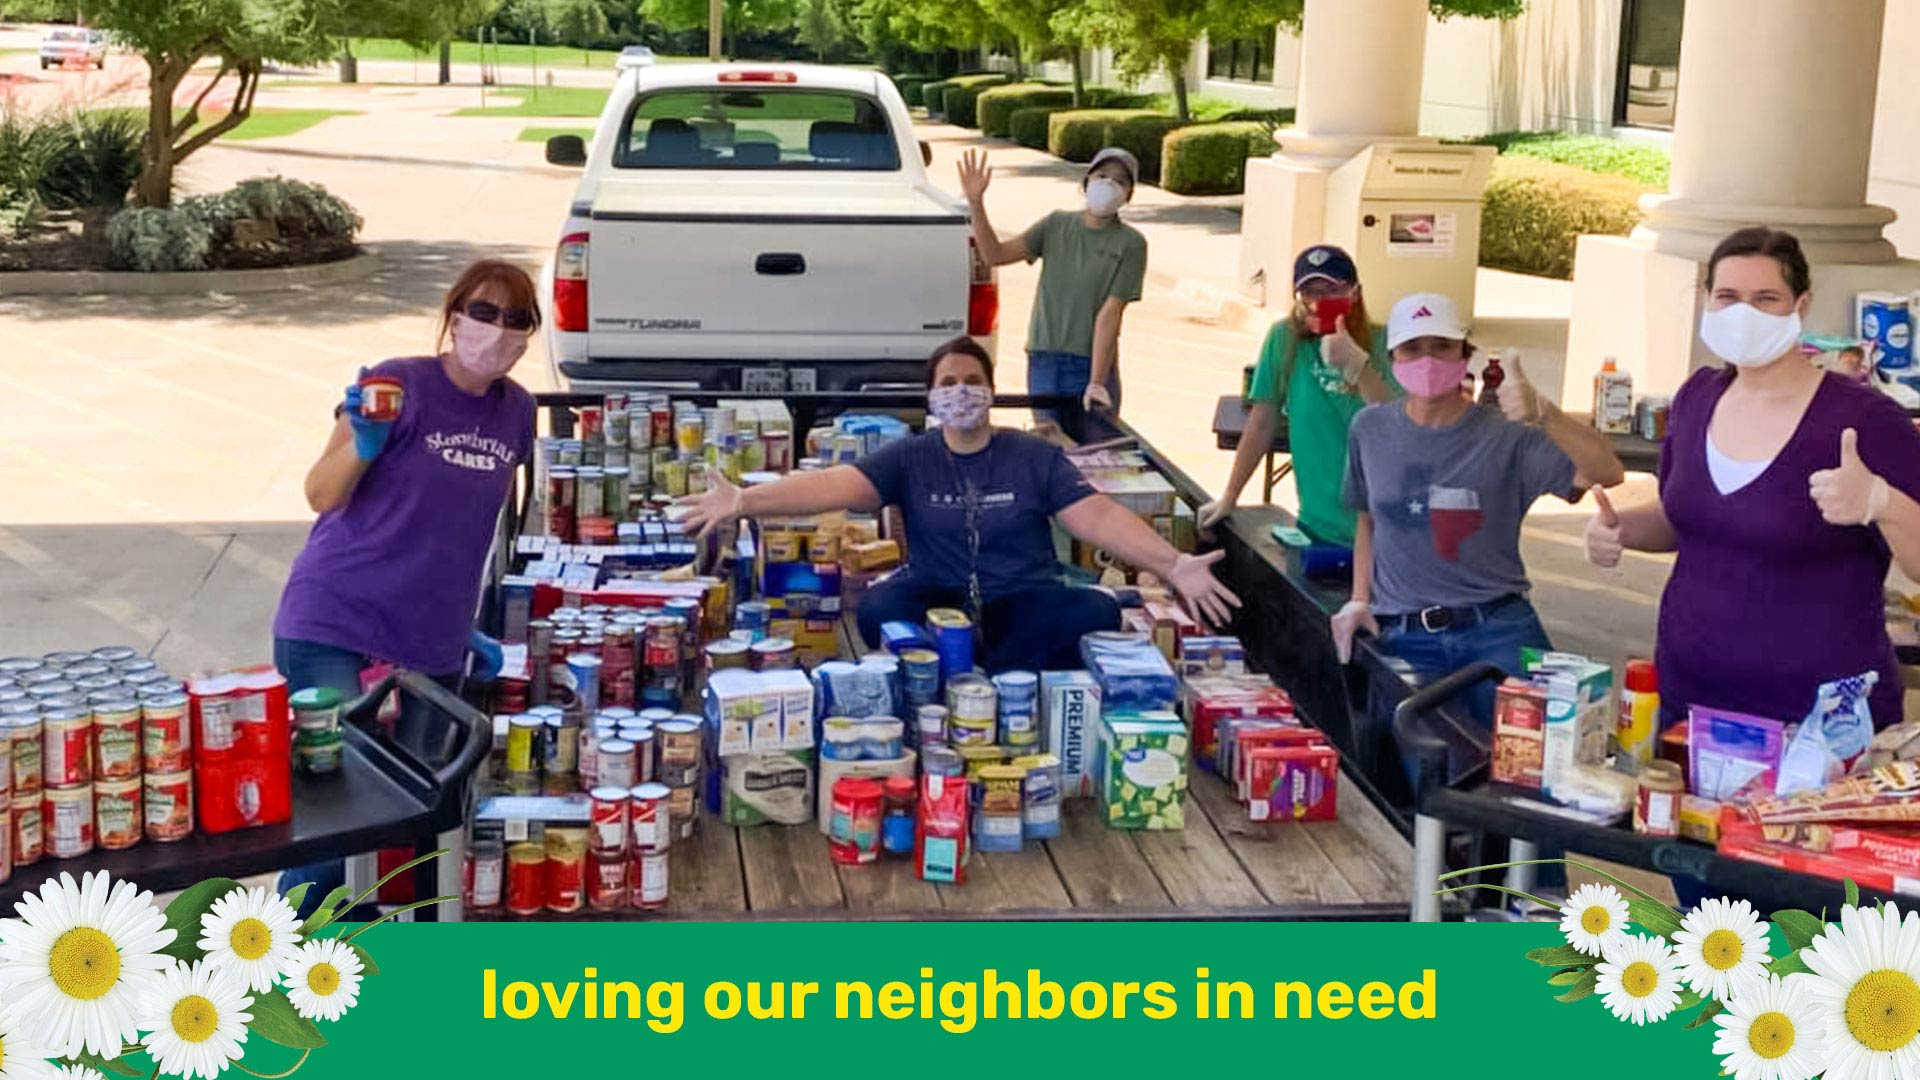 Loving Our Neighbors in Need